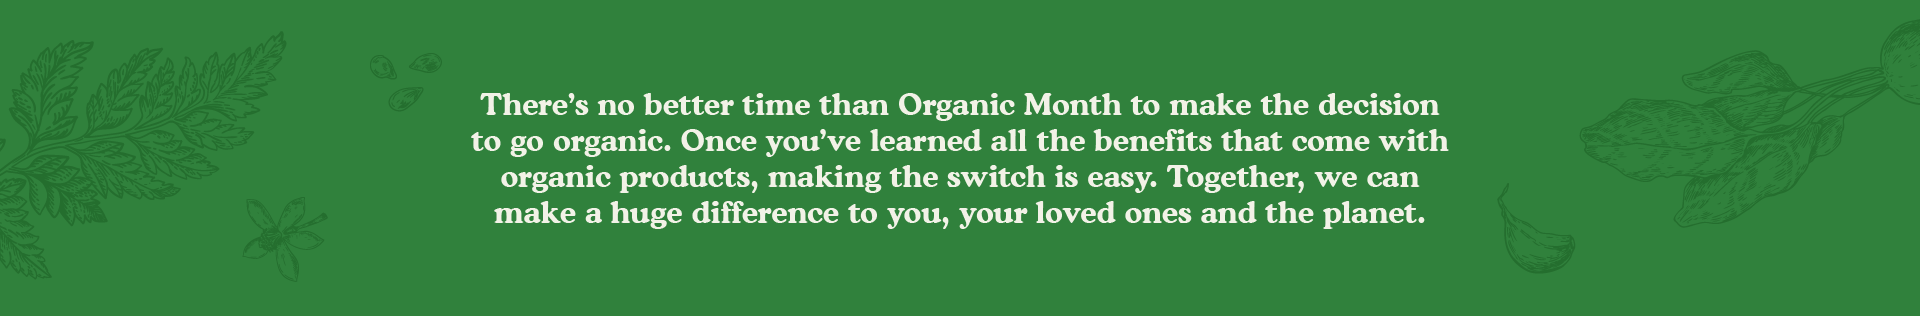 There's no better time to go organic than Organic Month